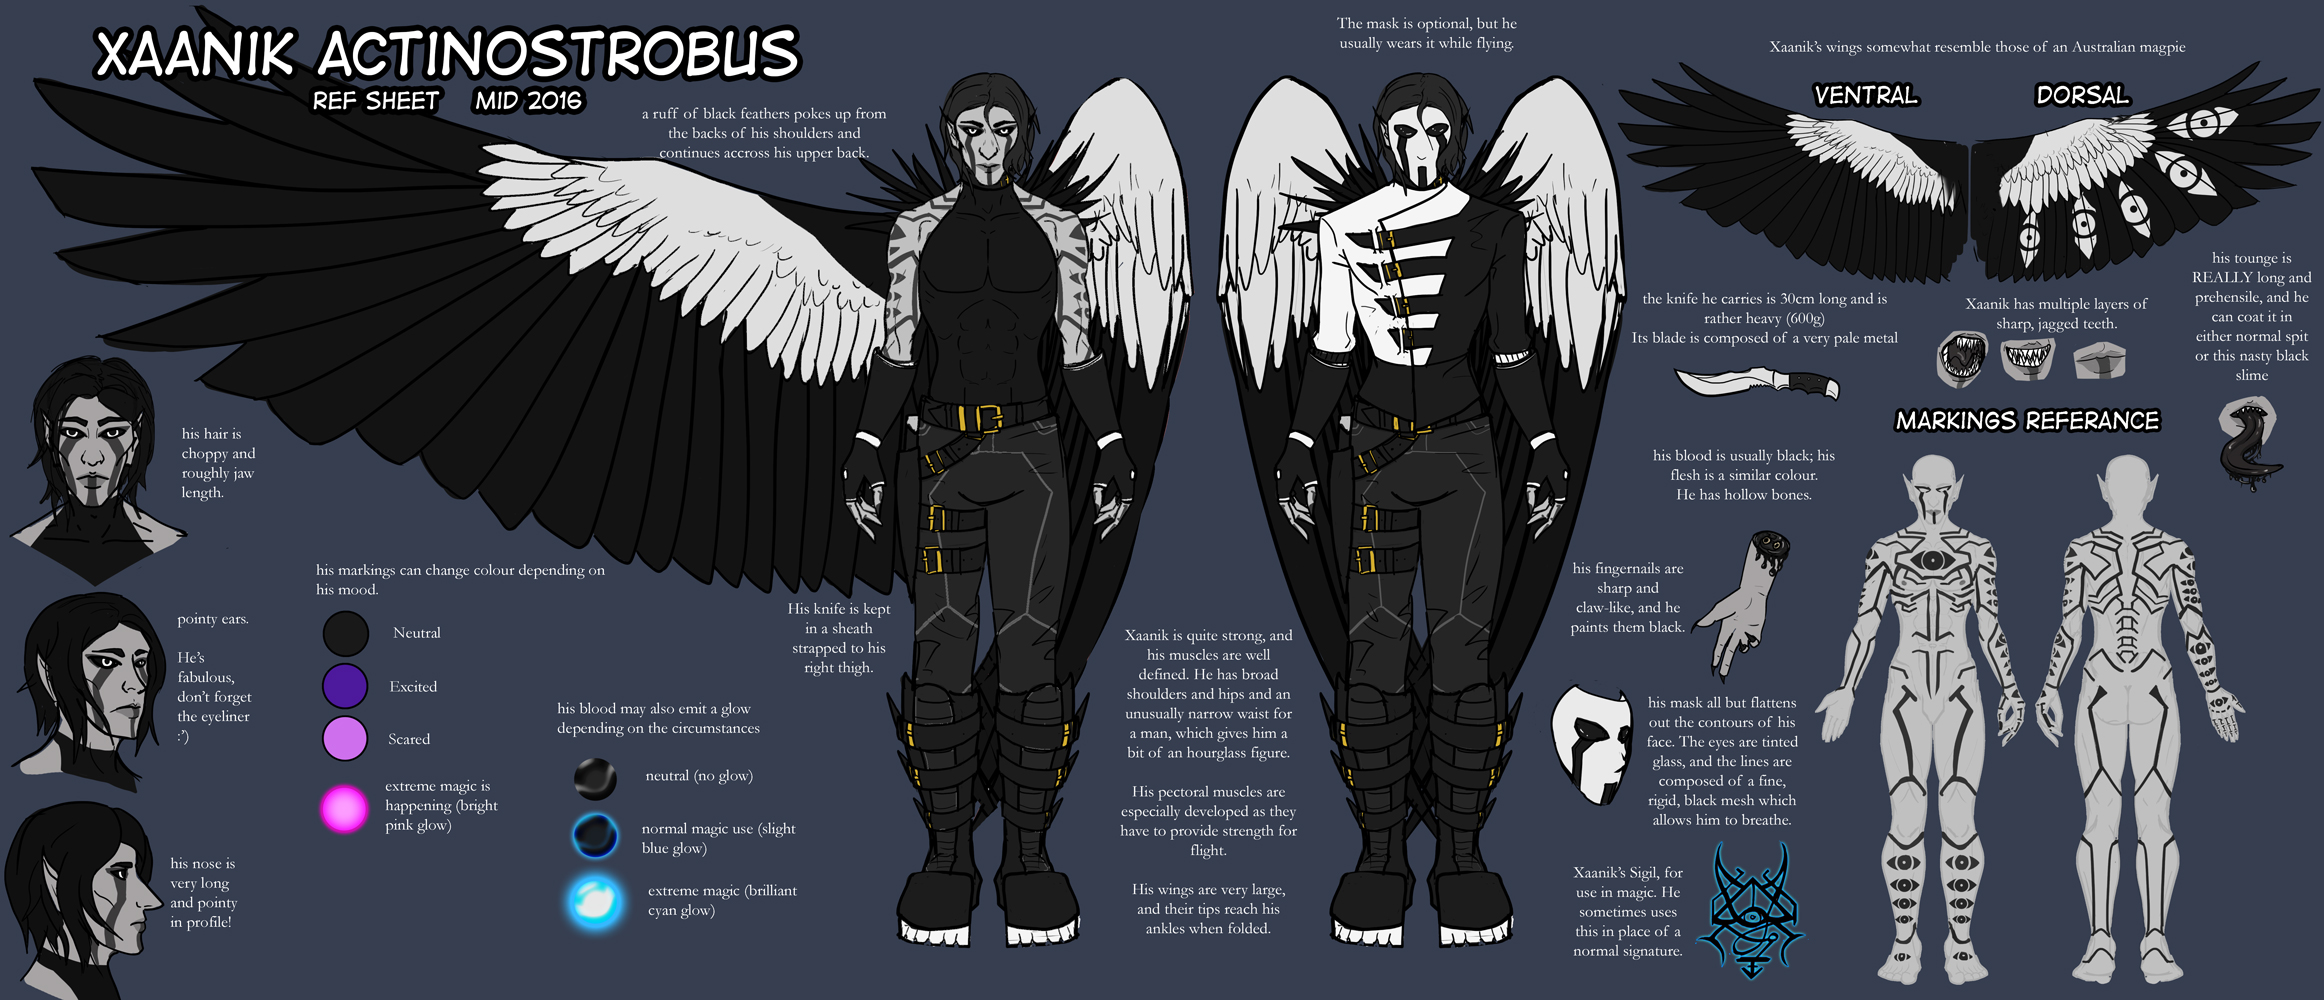 [OUTDATED] Xaanik Ref Sheet (Mid 2016) by SilverPsychopomp